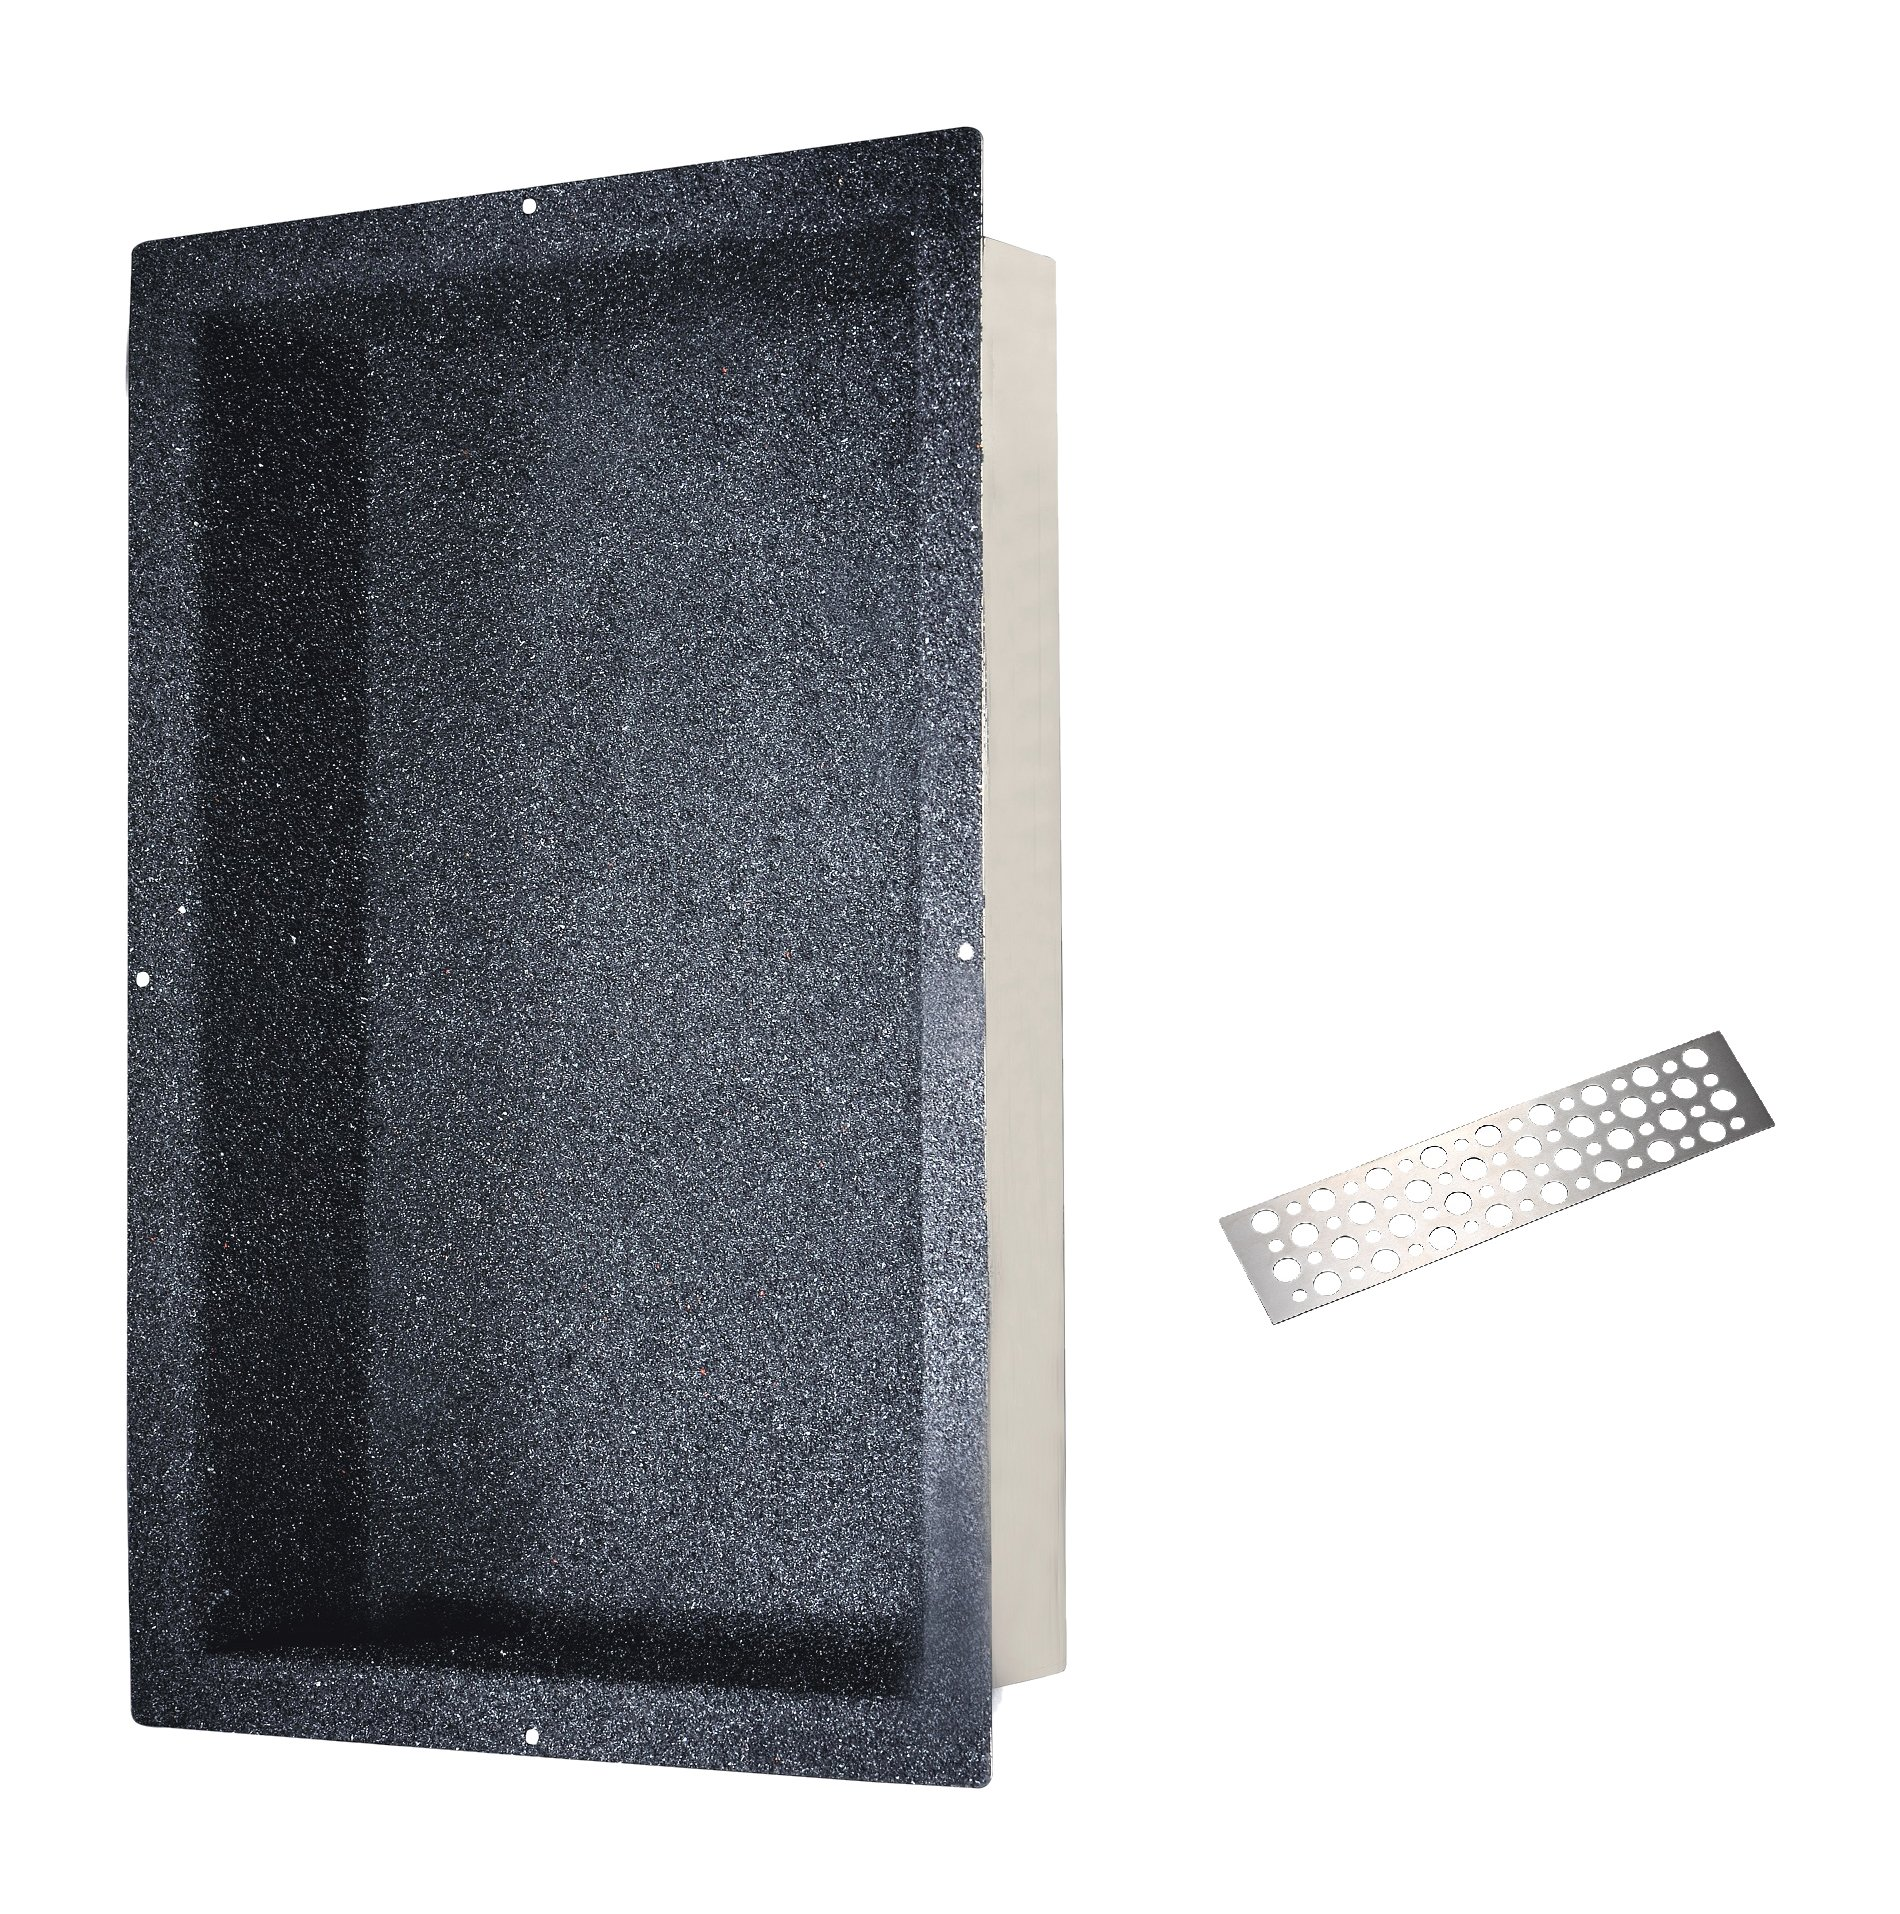 Dawn NI241403 Stainless steel Shower Niche with One Stainless steel Support Plate